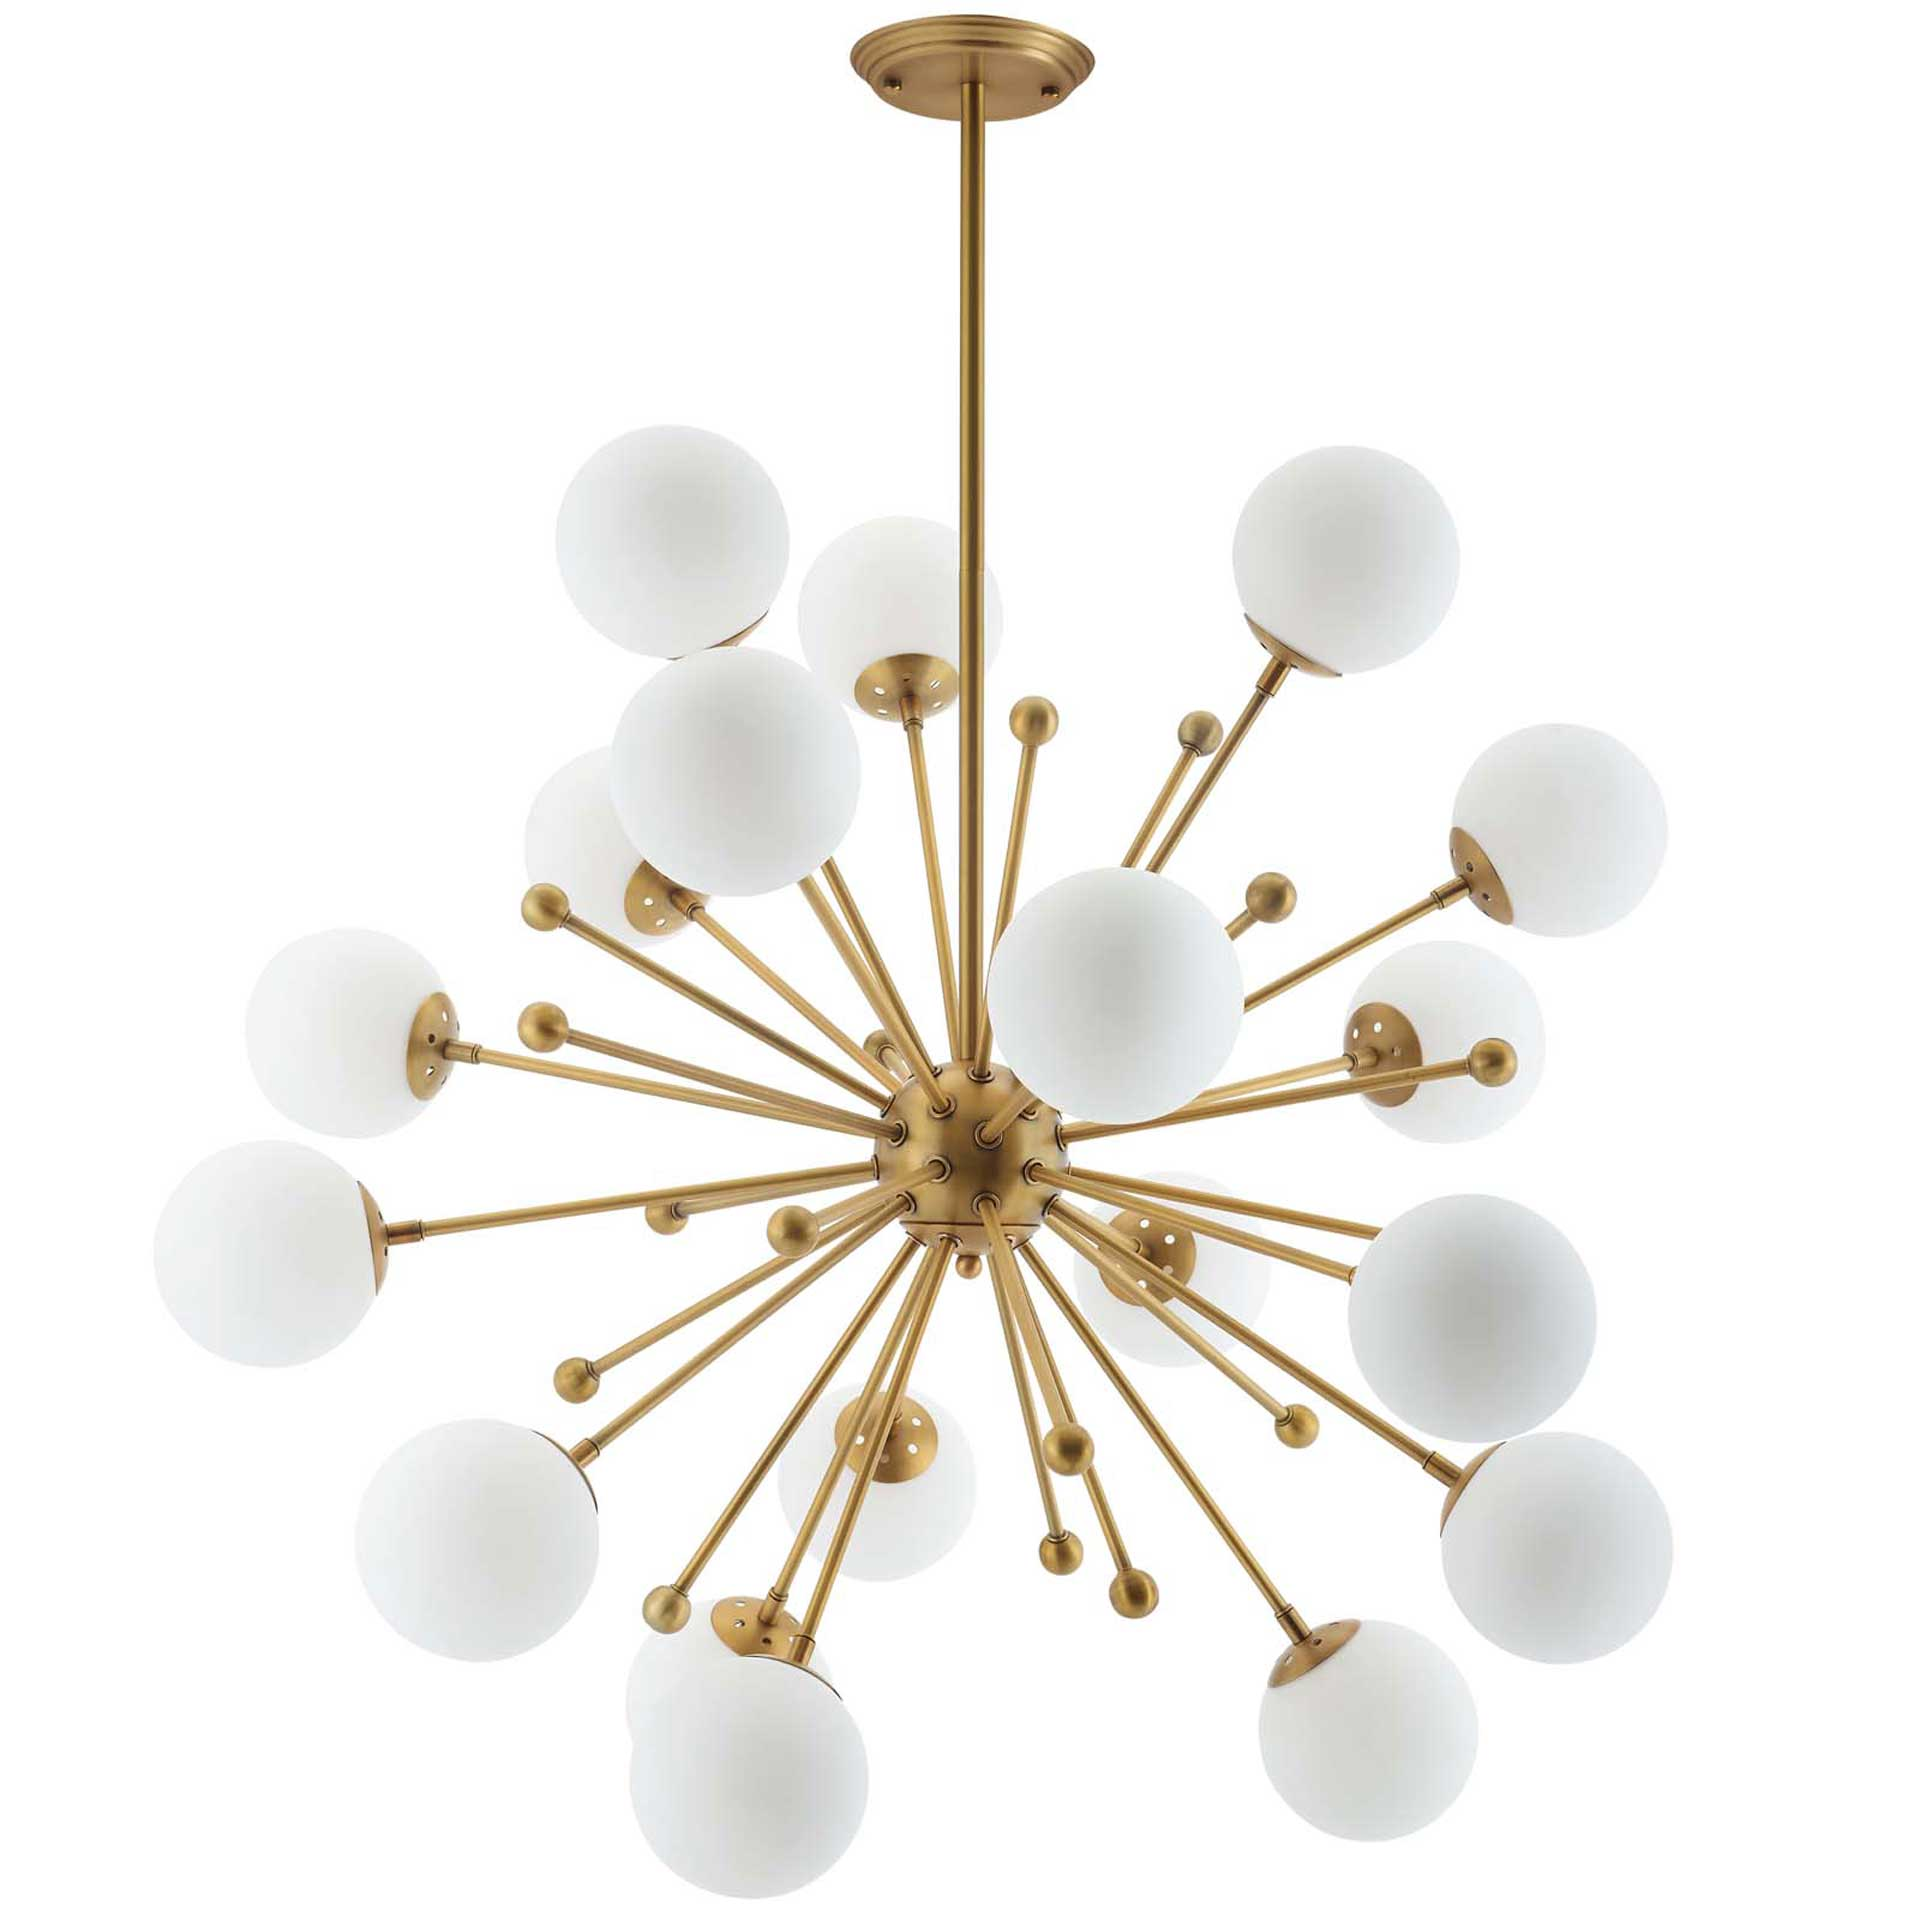 Caroline White Glass Chandelier White/Brass Gold